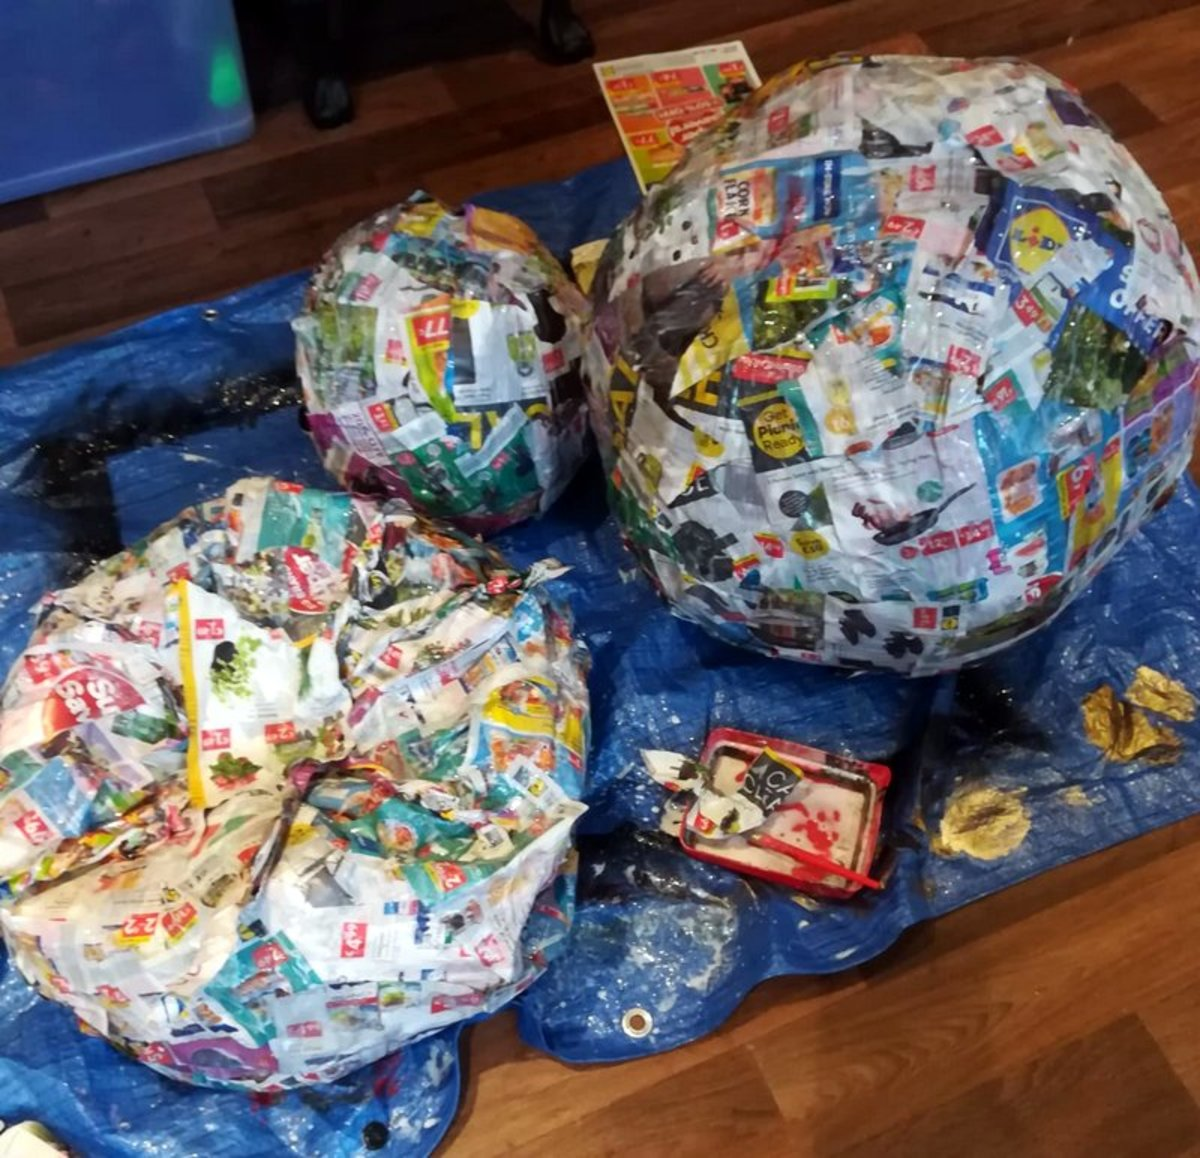 I use my homemade glue mixture to coat the inflated beachballs with newspaper. This process is very similar to paper maché.